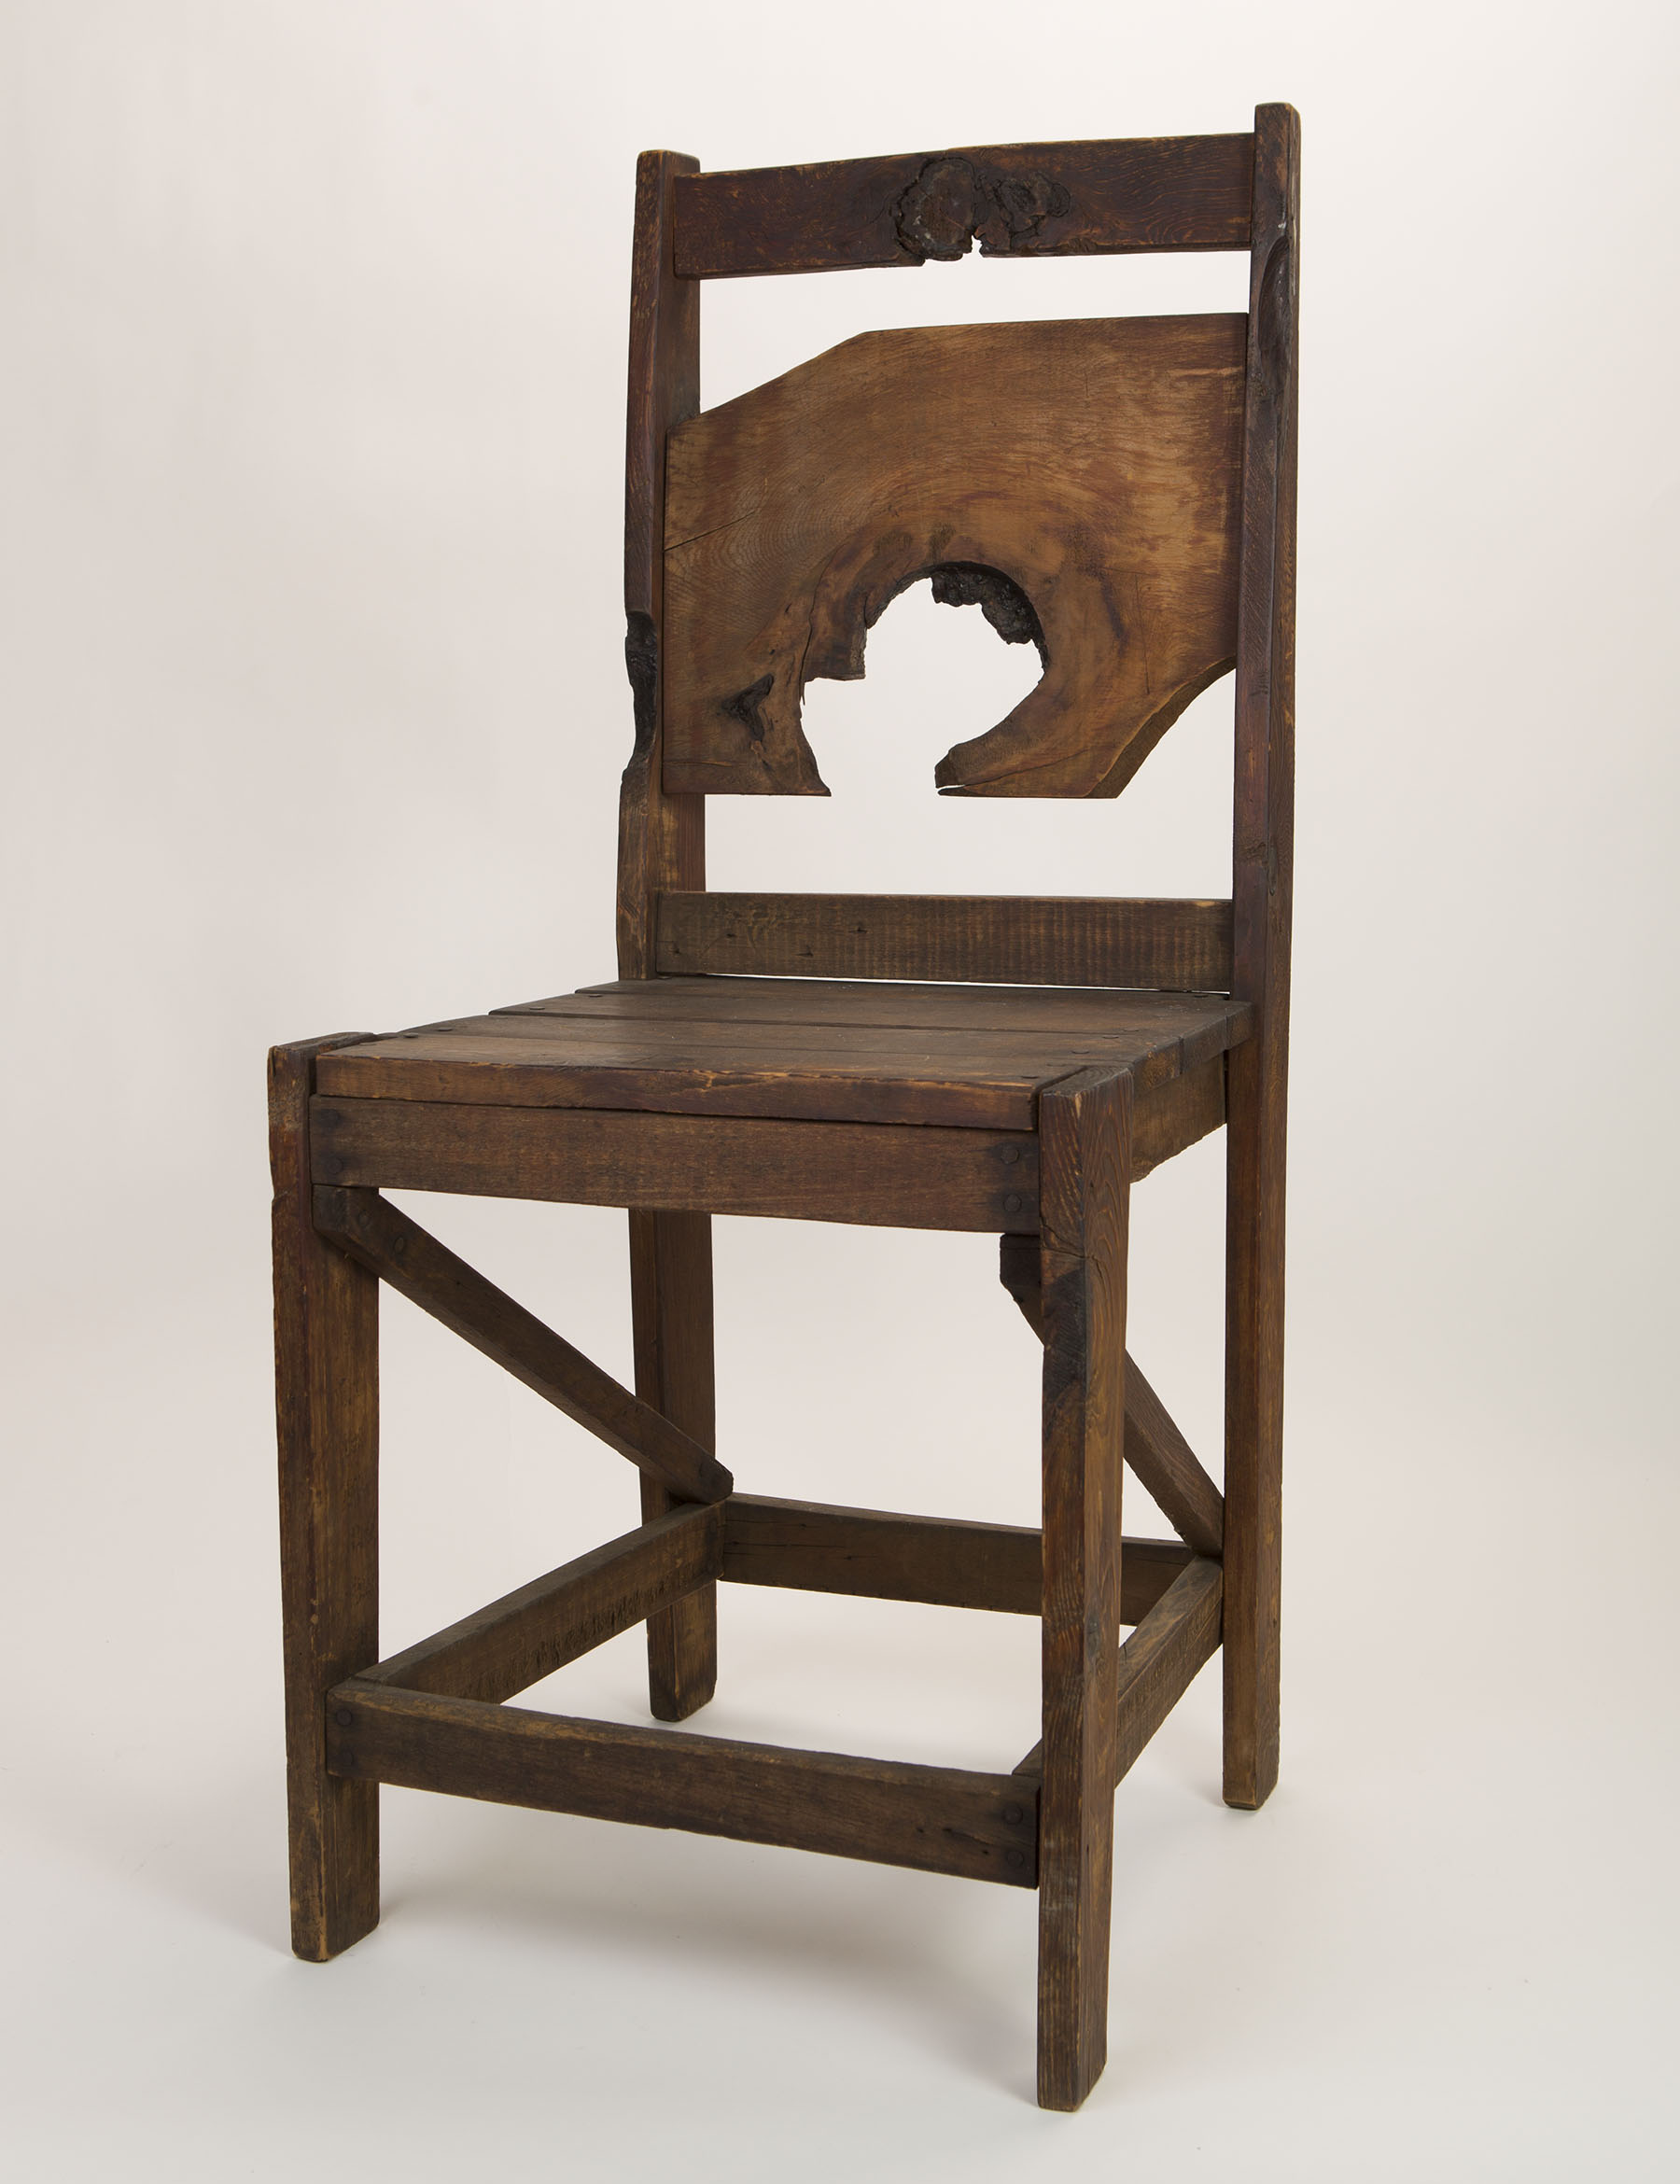 Japanese Chair About Contested Histories Japanese American National Museum